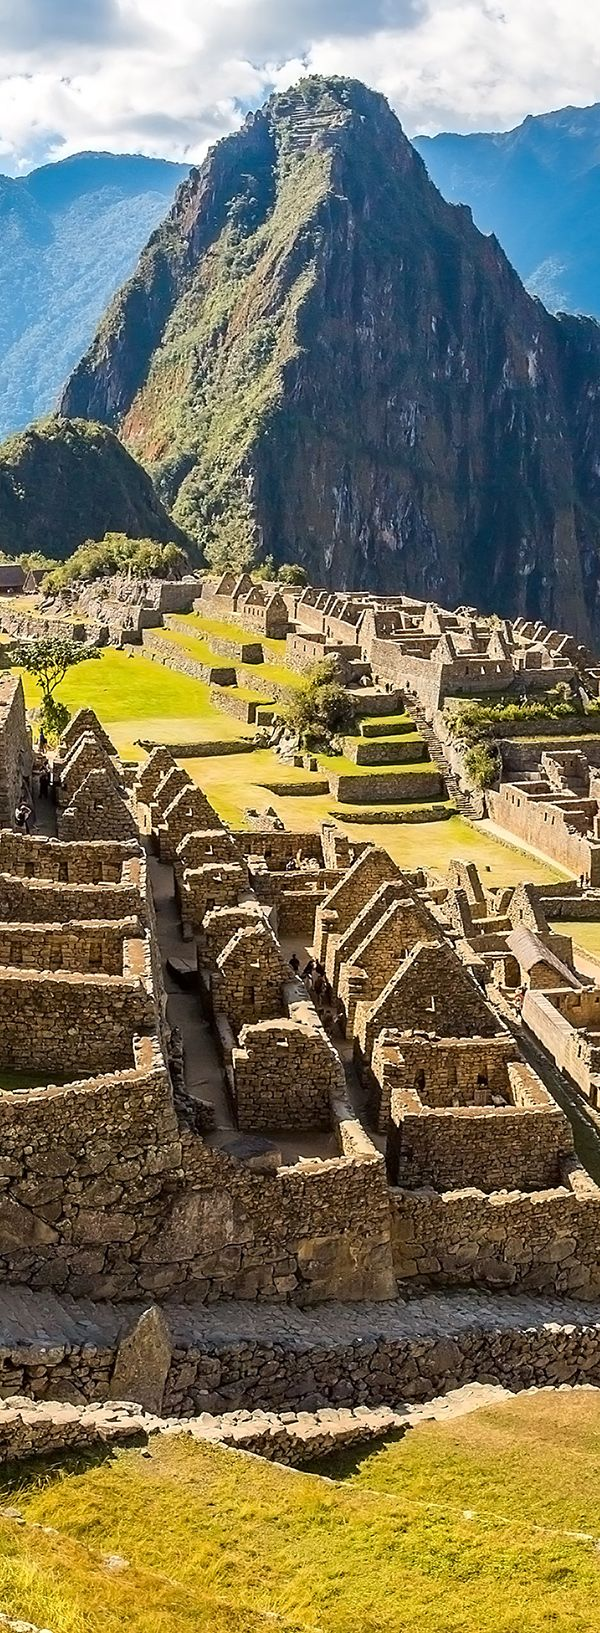 Machu Picchu, Peru,South America                                                                                                                                                                                 More